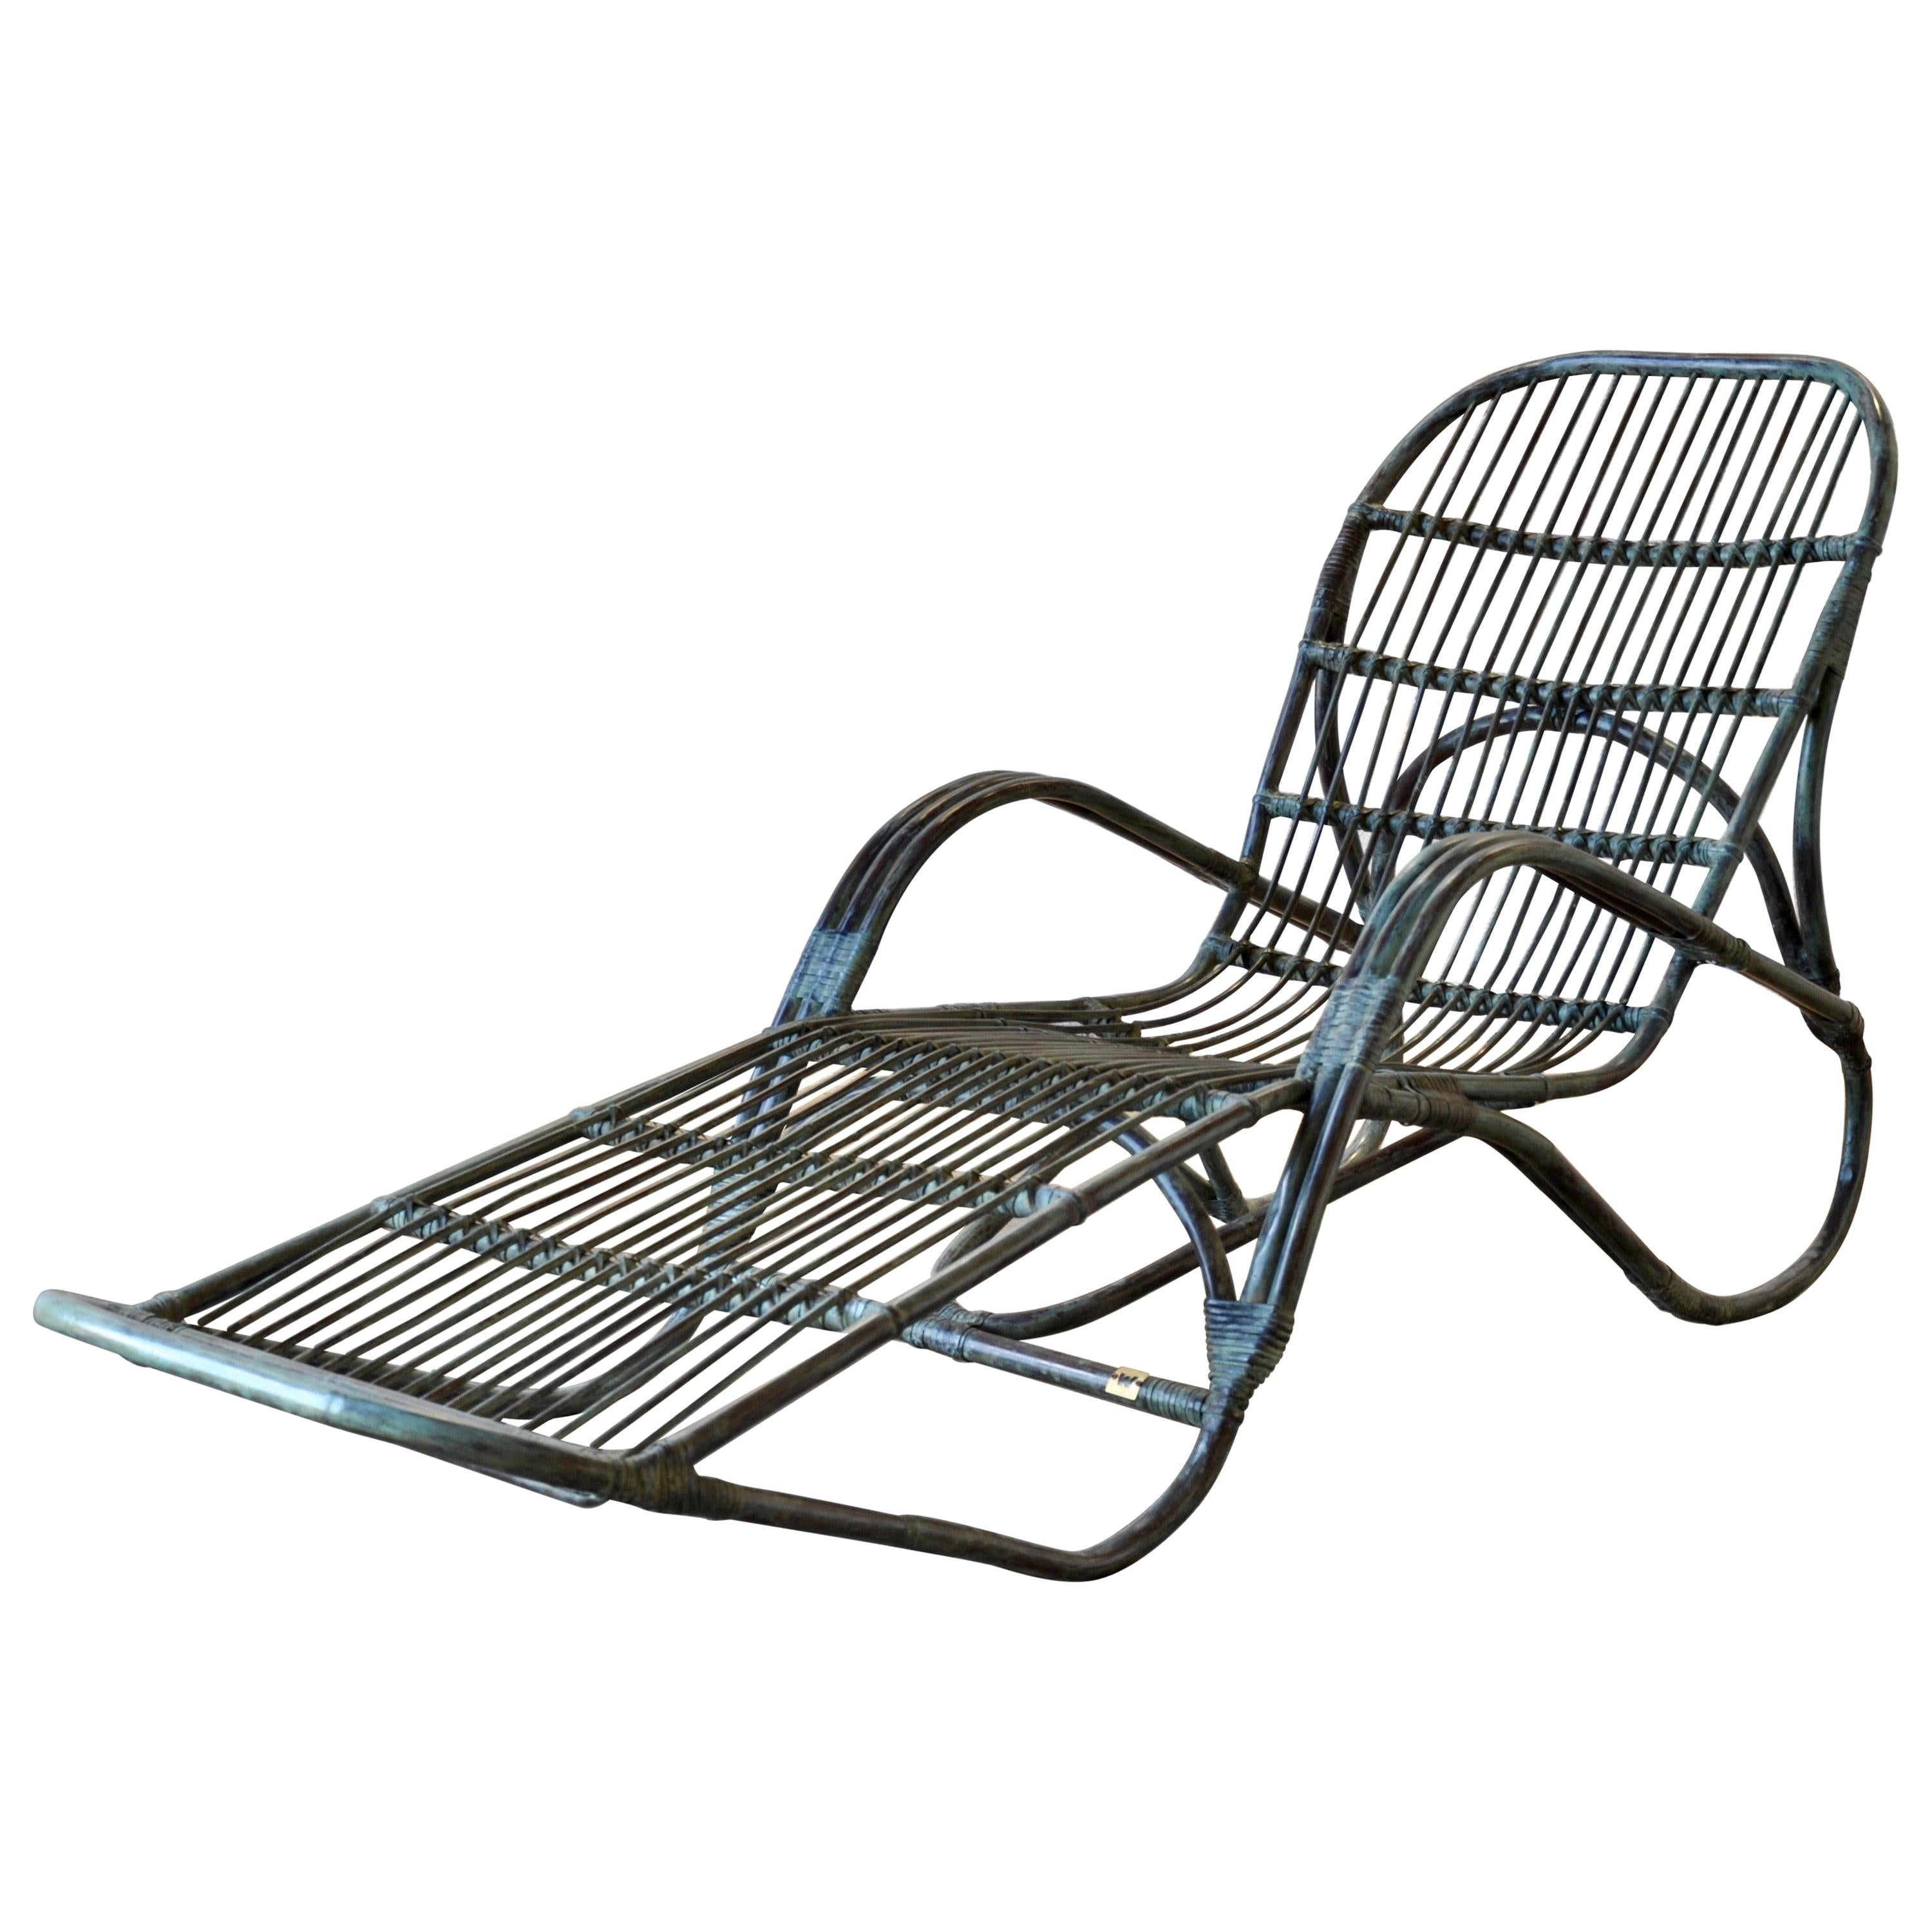 Andreas Wargenbrant, Lounge Chair in Bronze 2/50